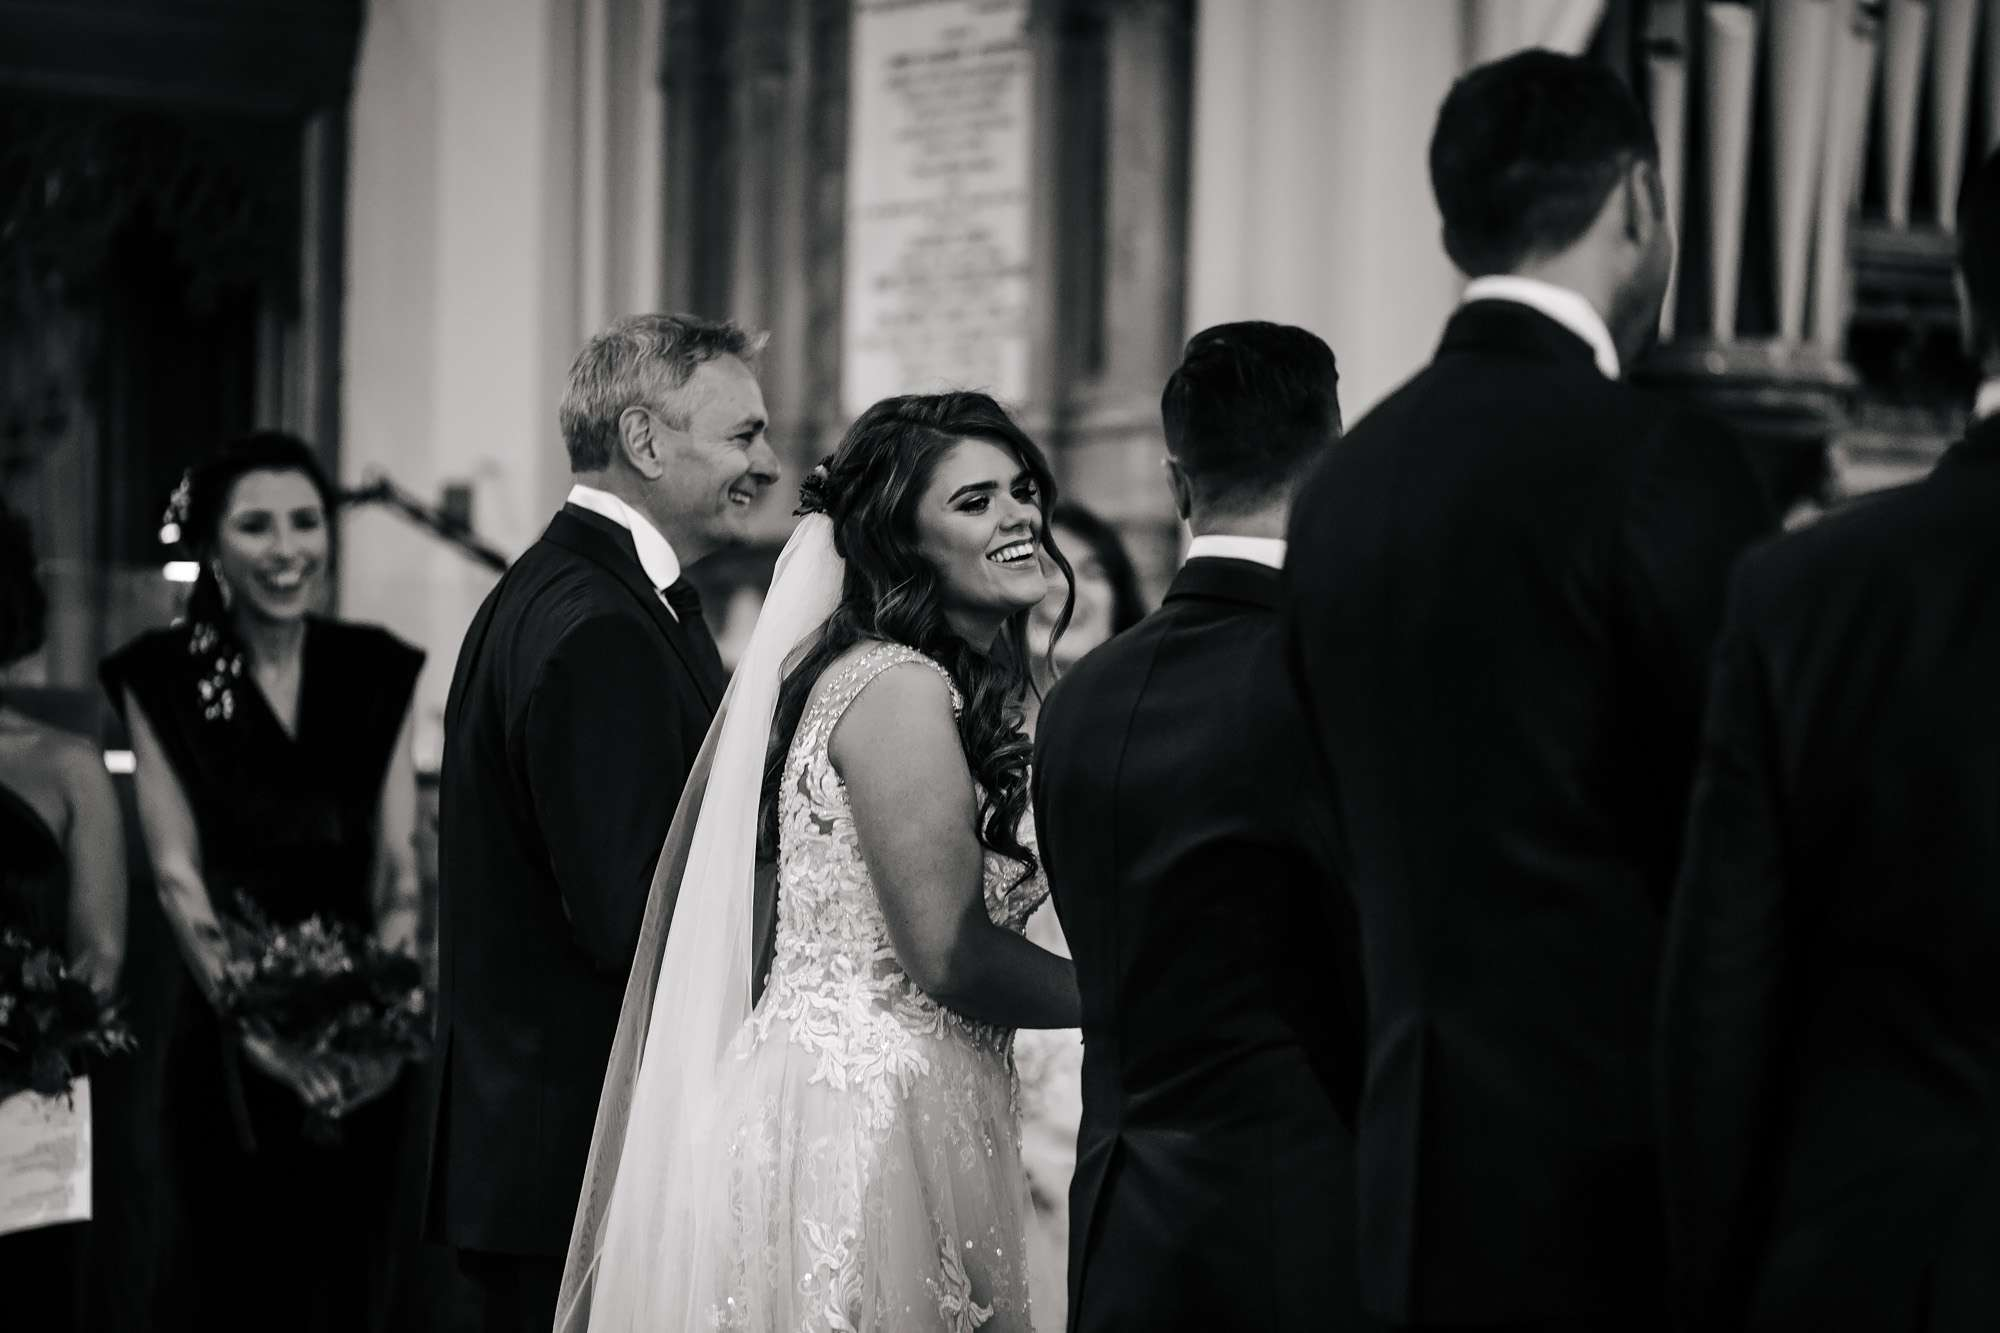 Bride at her church wedding ceremony in Blackpool